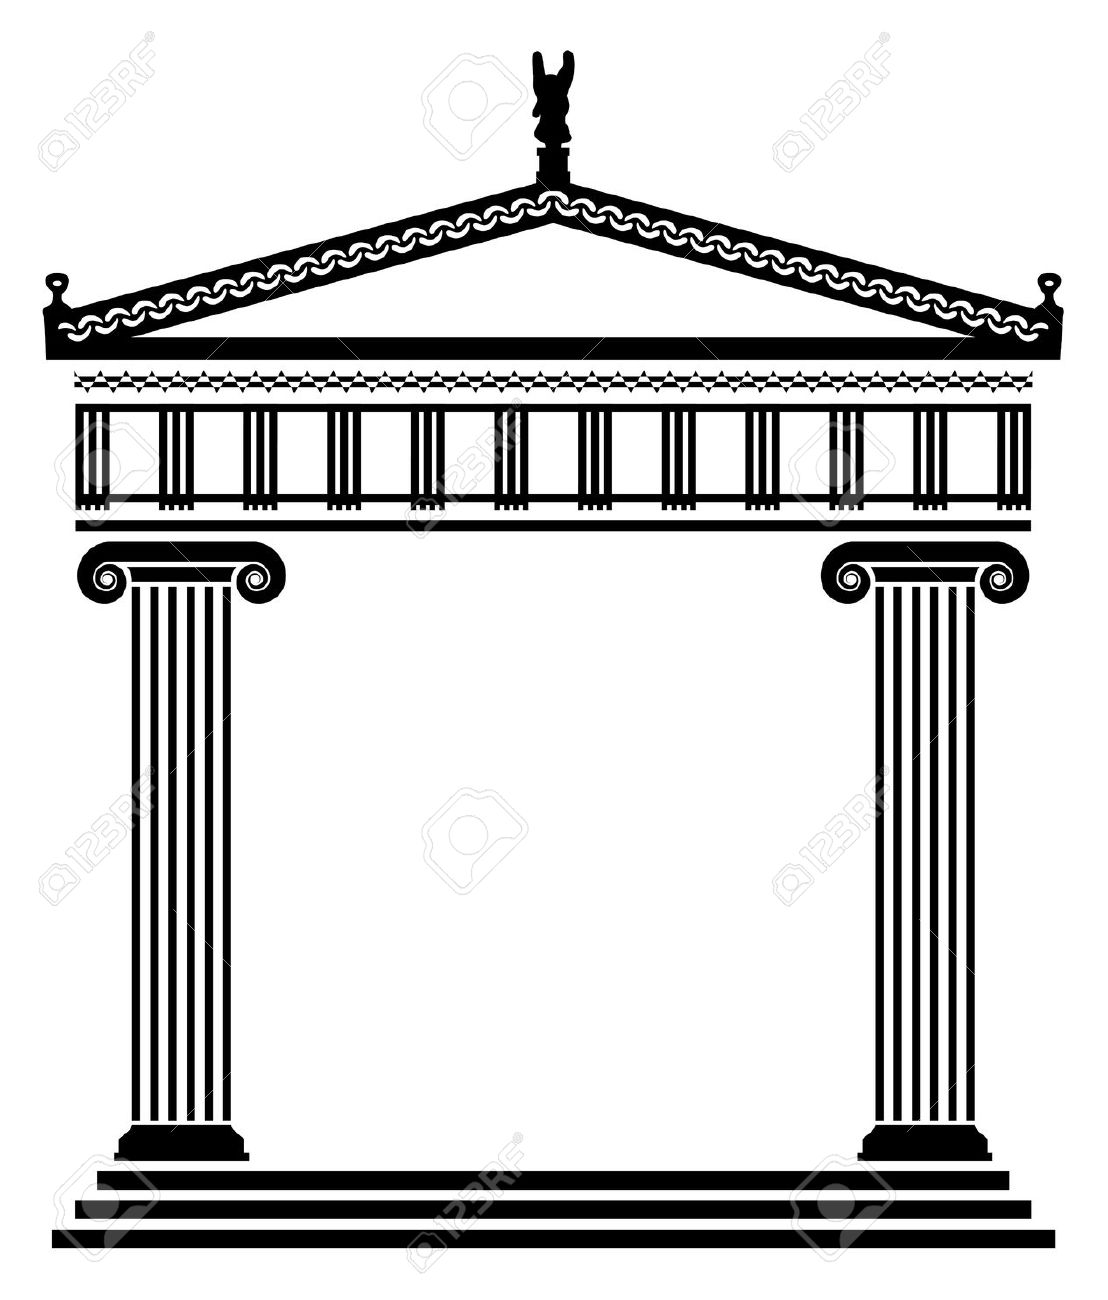 Free Greek Temple Cliparts, Download Free Clip Art, Free